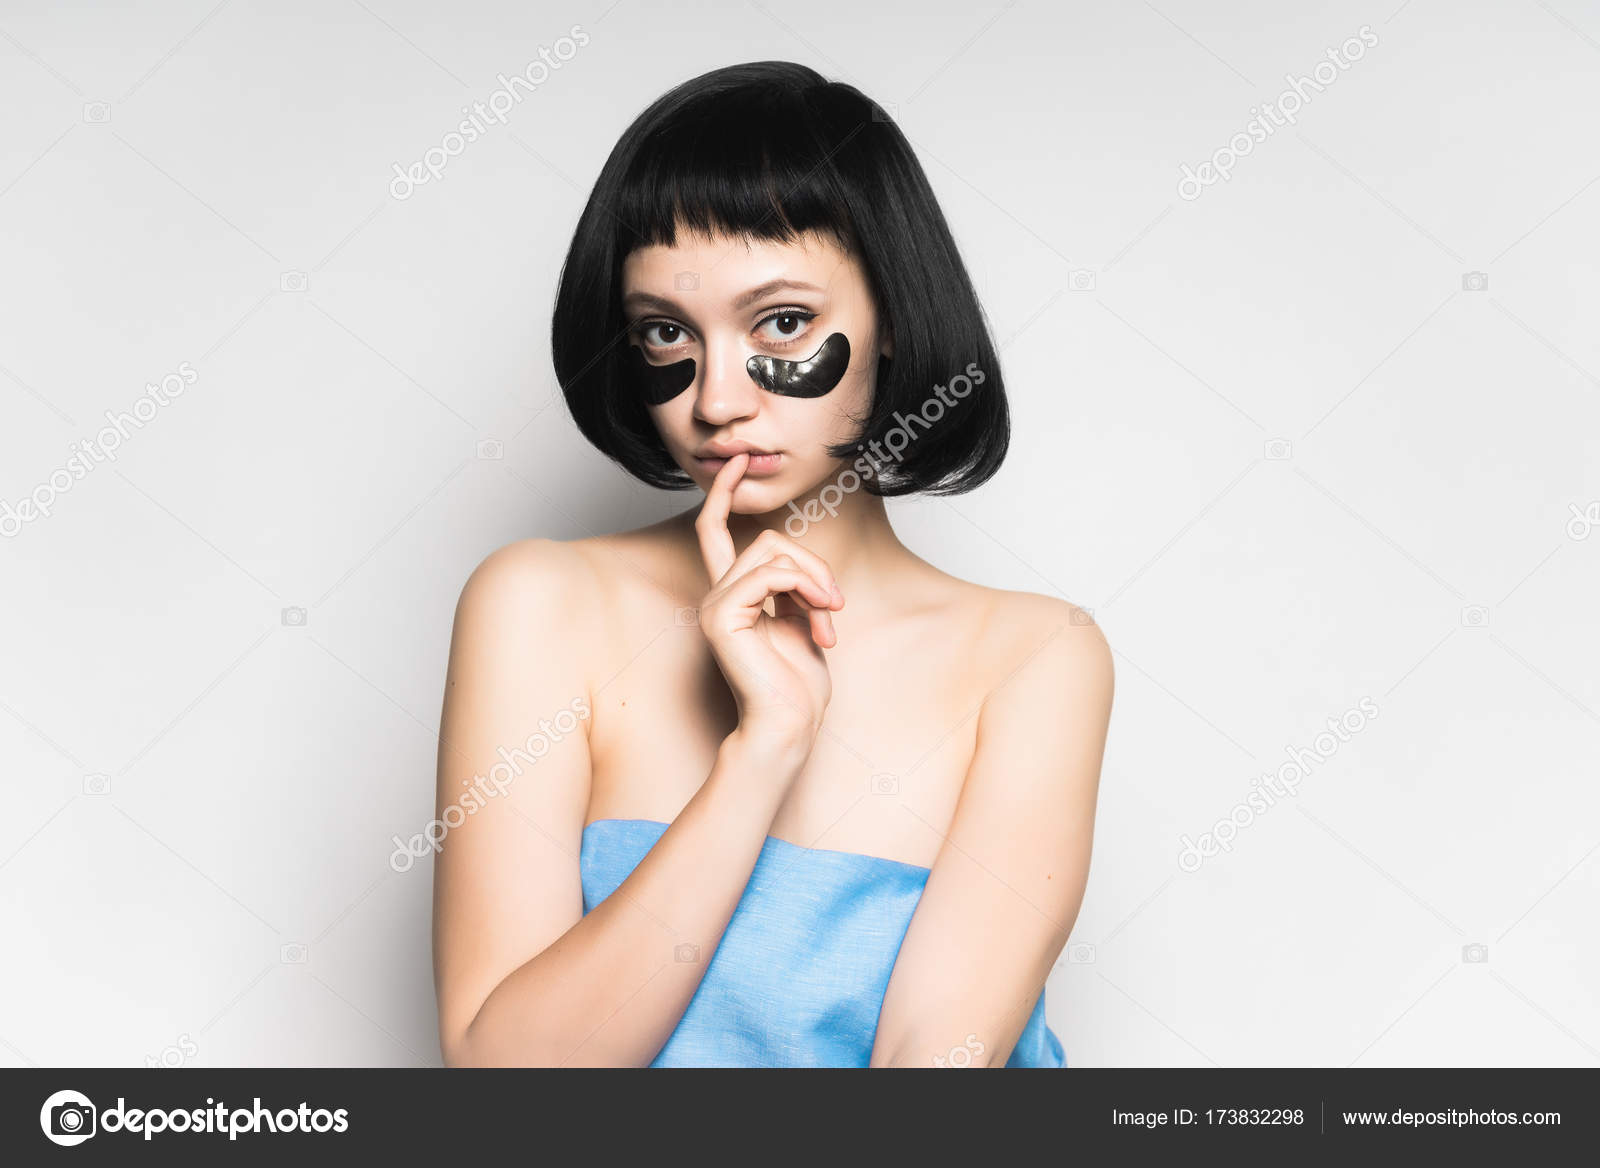 Girl With Short Black Hair With Patches On Face Sexy Looking At